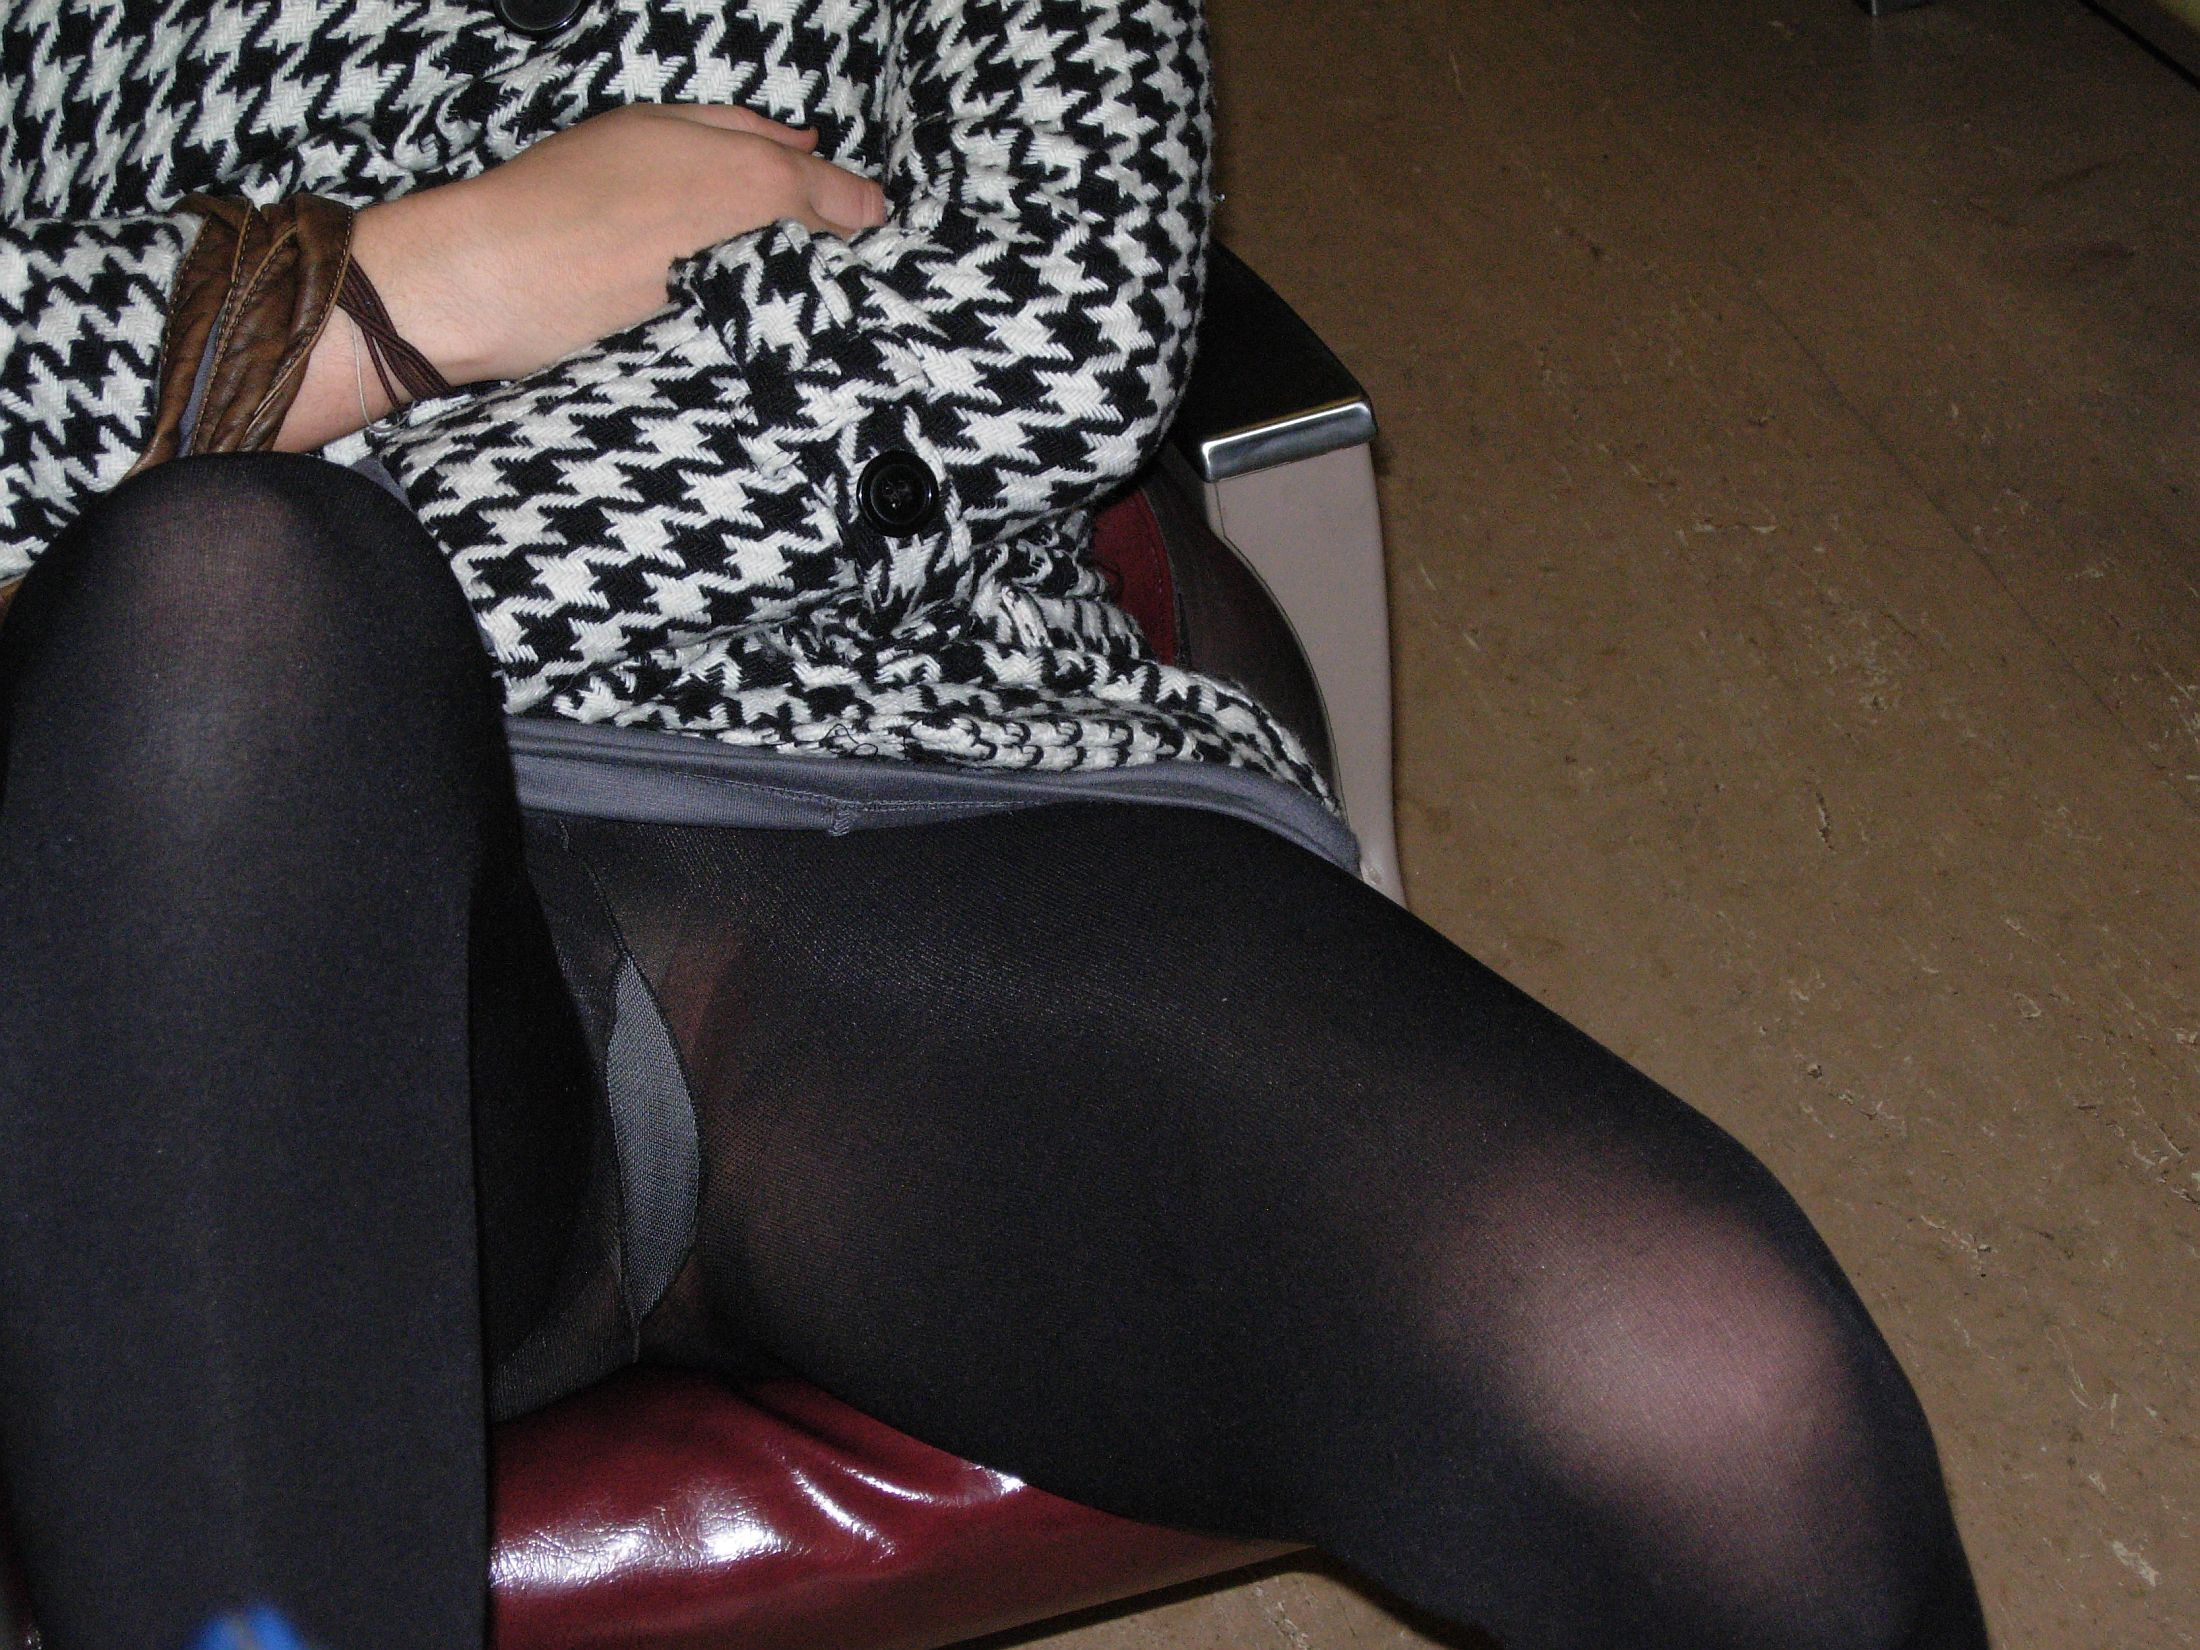 Upskirt pics of passed out chick - Gallery | eBaums World